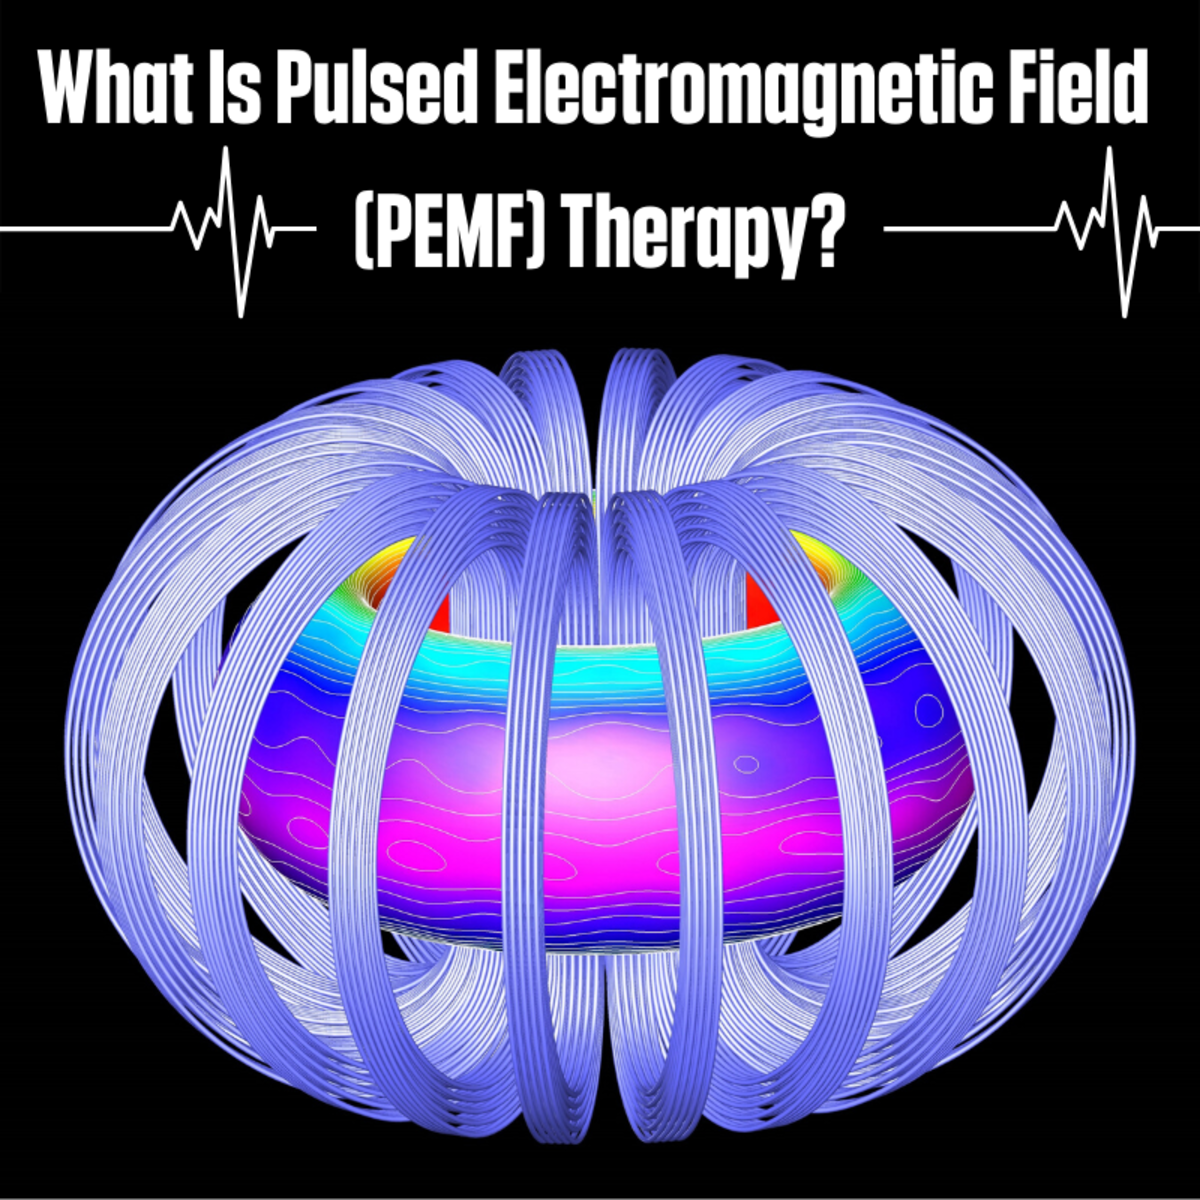 Is PEMF therapy all it's cracked up to be? Here's what you need to know about this new trend in physical recovery.